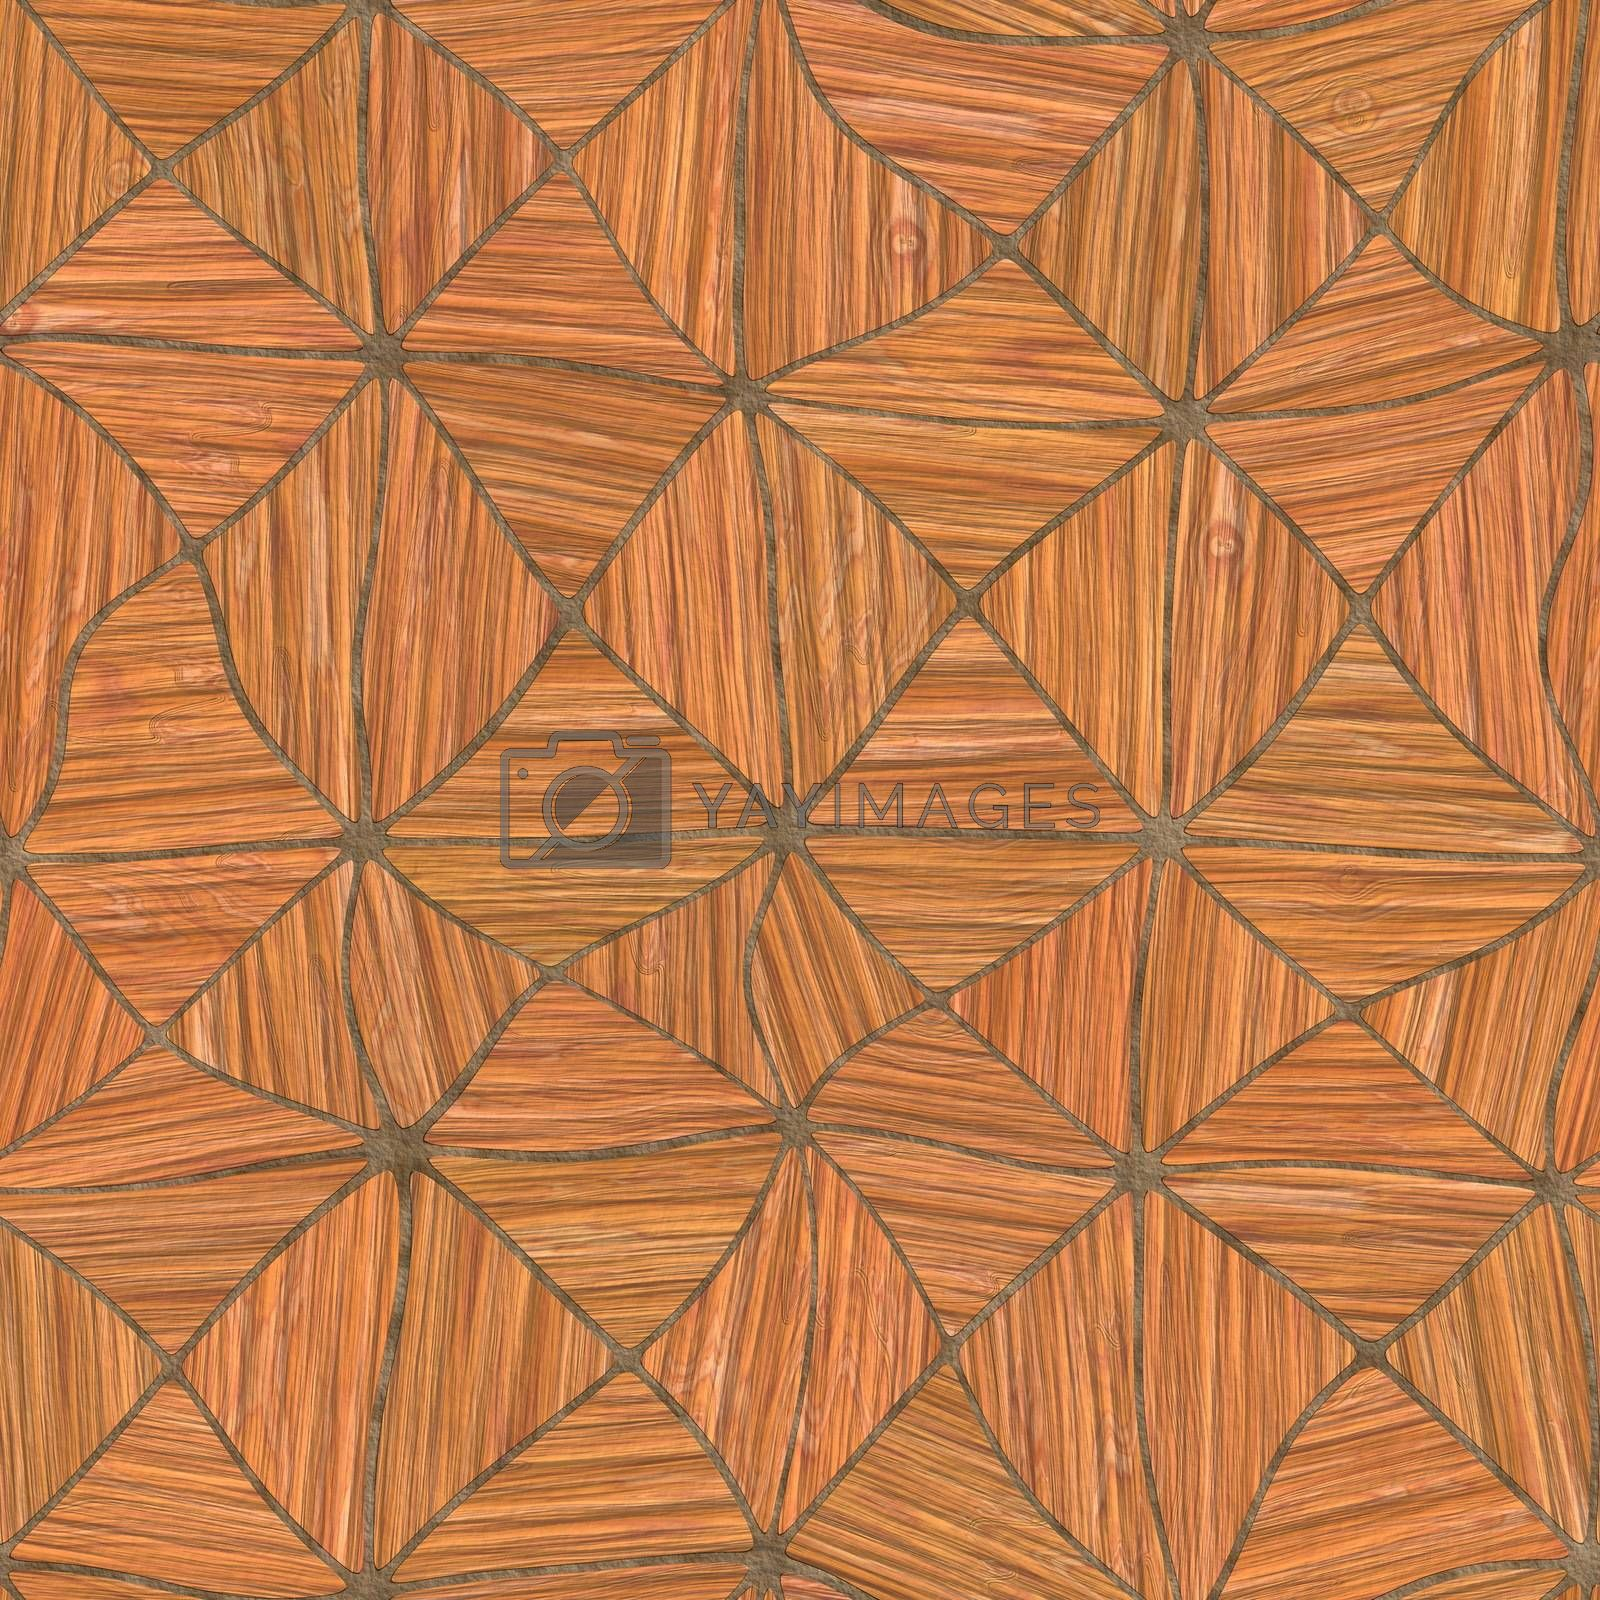 Irregular abstract seamless tileable wood background parquet pattern.